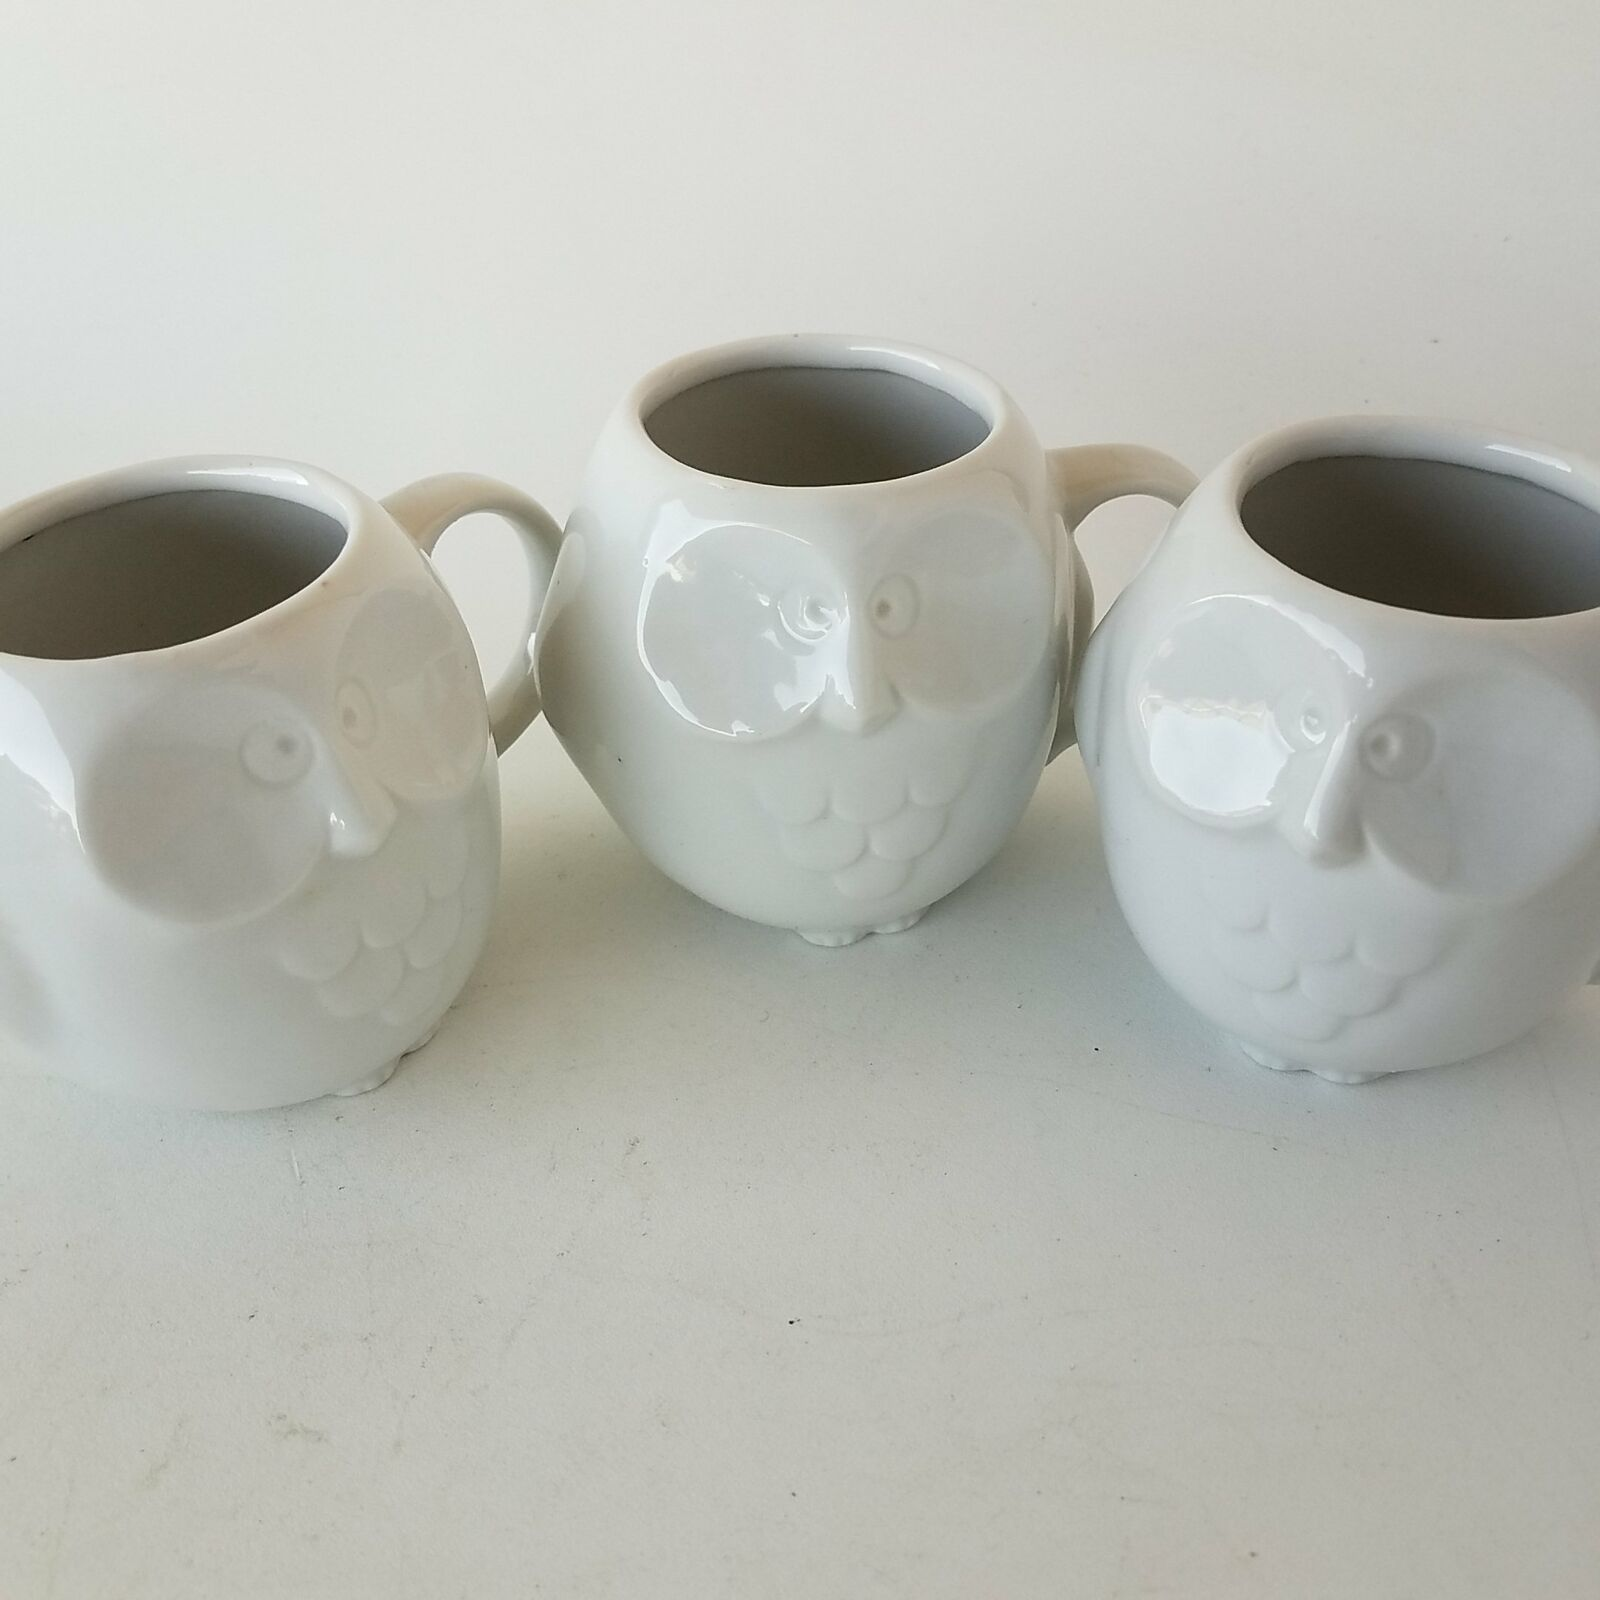 Primary image for Owl Figure Mugs Cups 3-Pieces